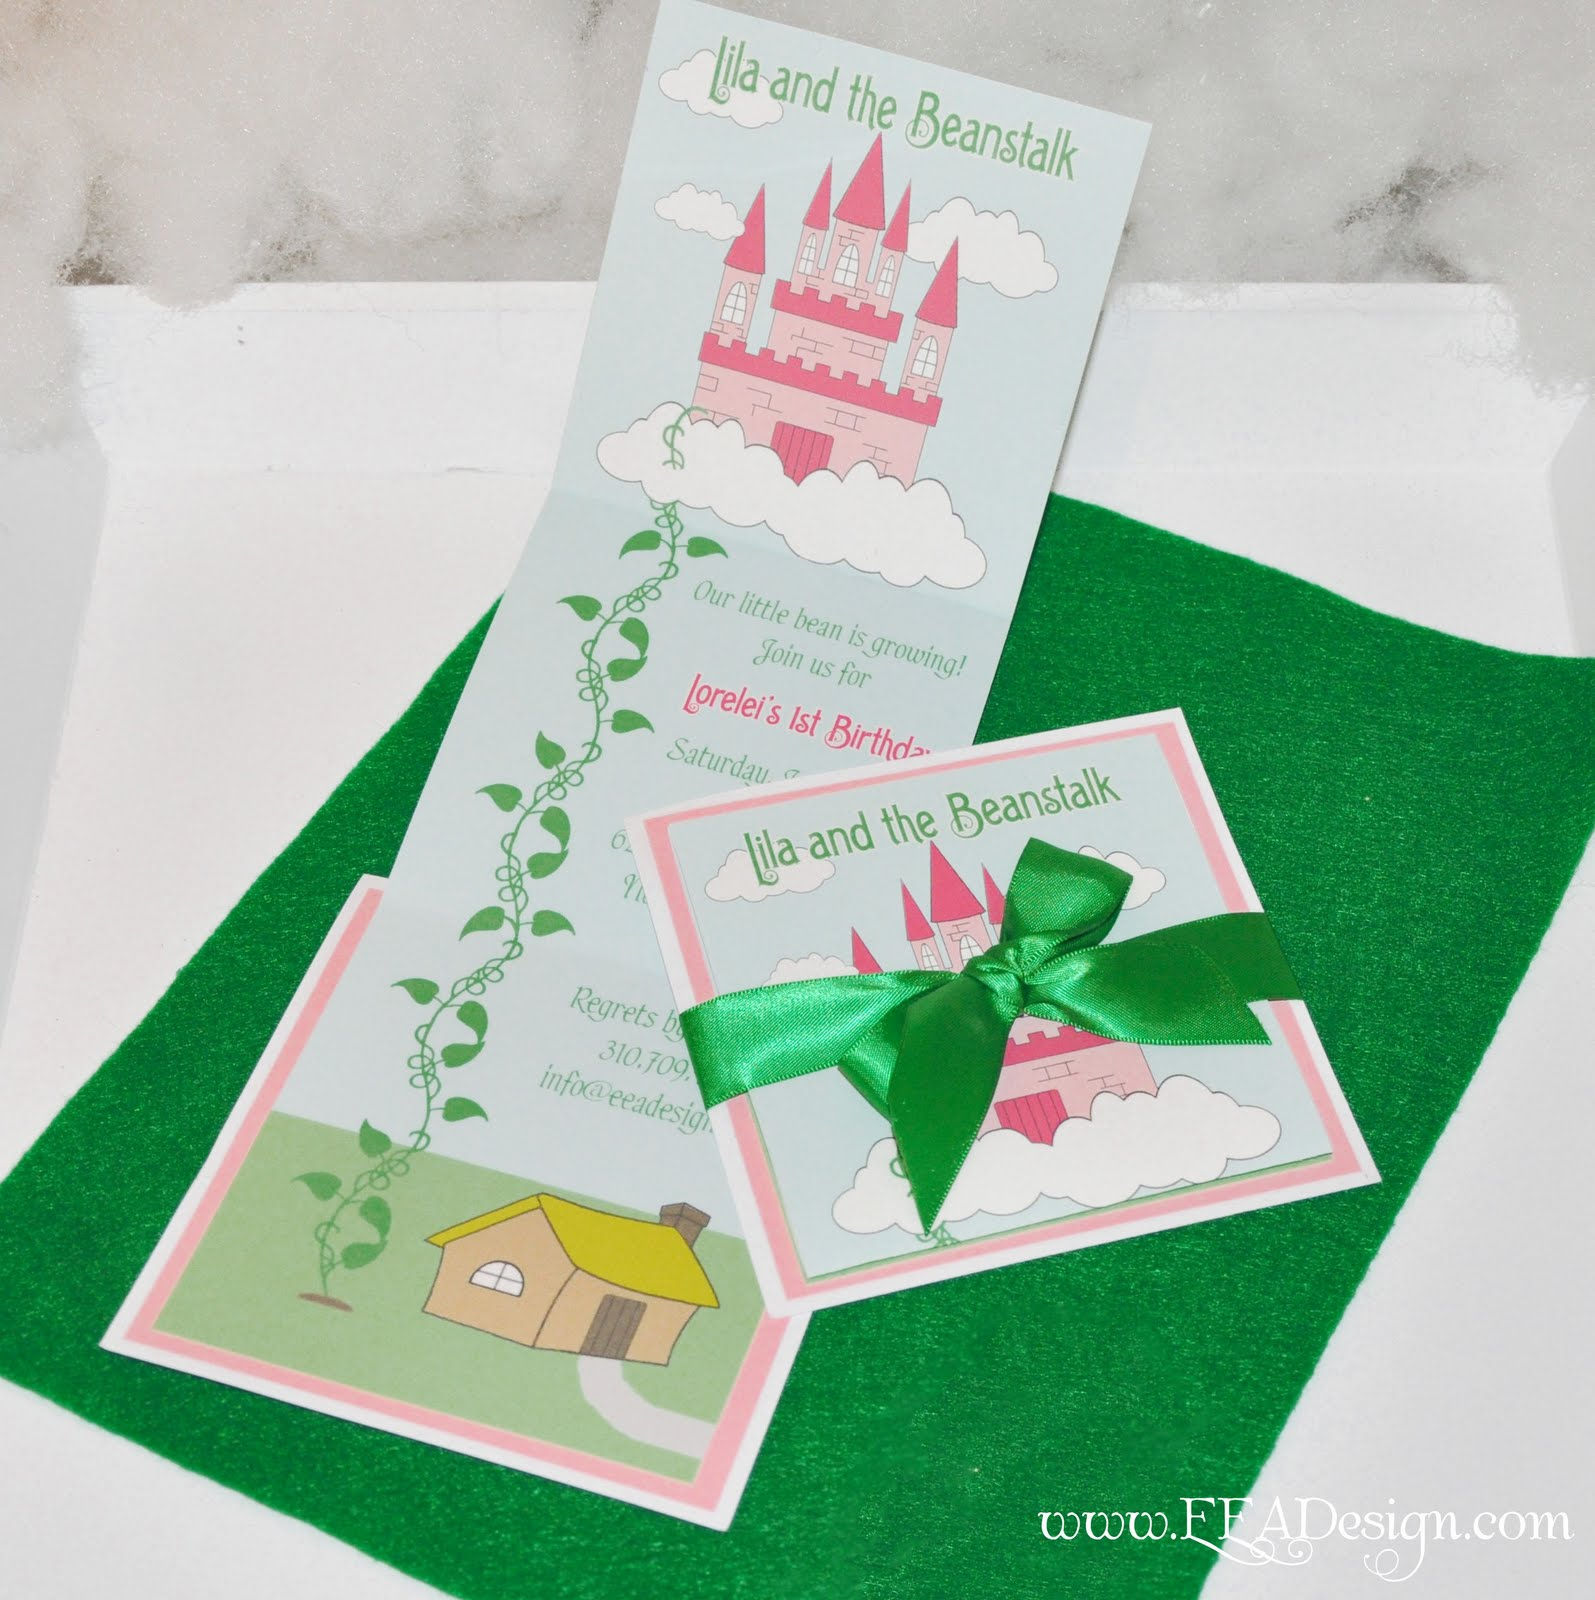 Enchanted Events Amp Design Event Recap Lila Amp The Beanstalk 1st Birthday